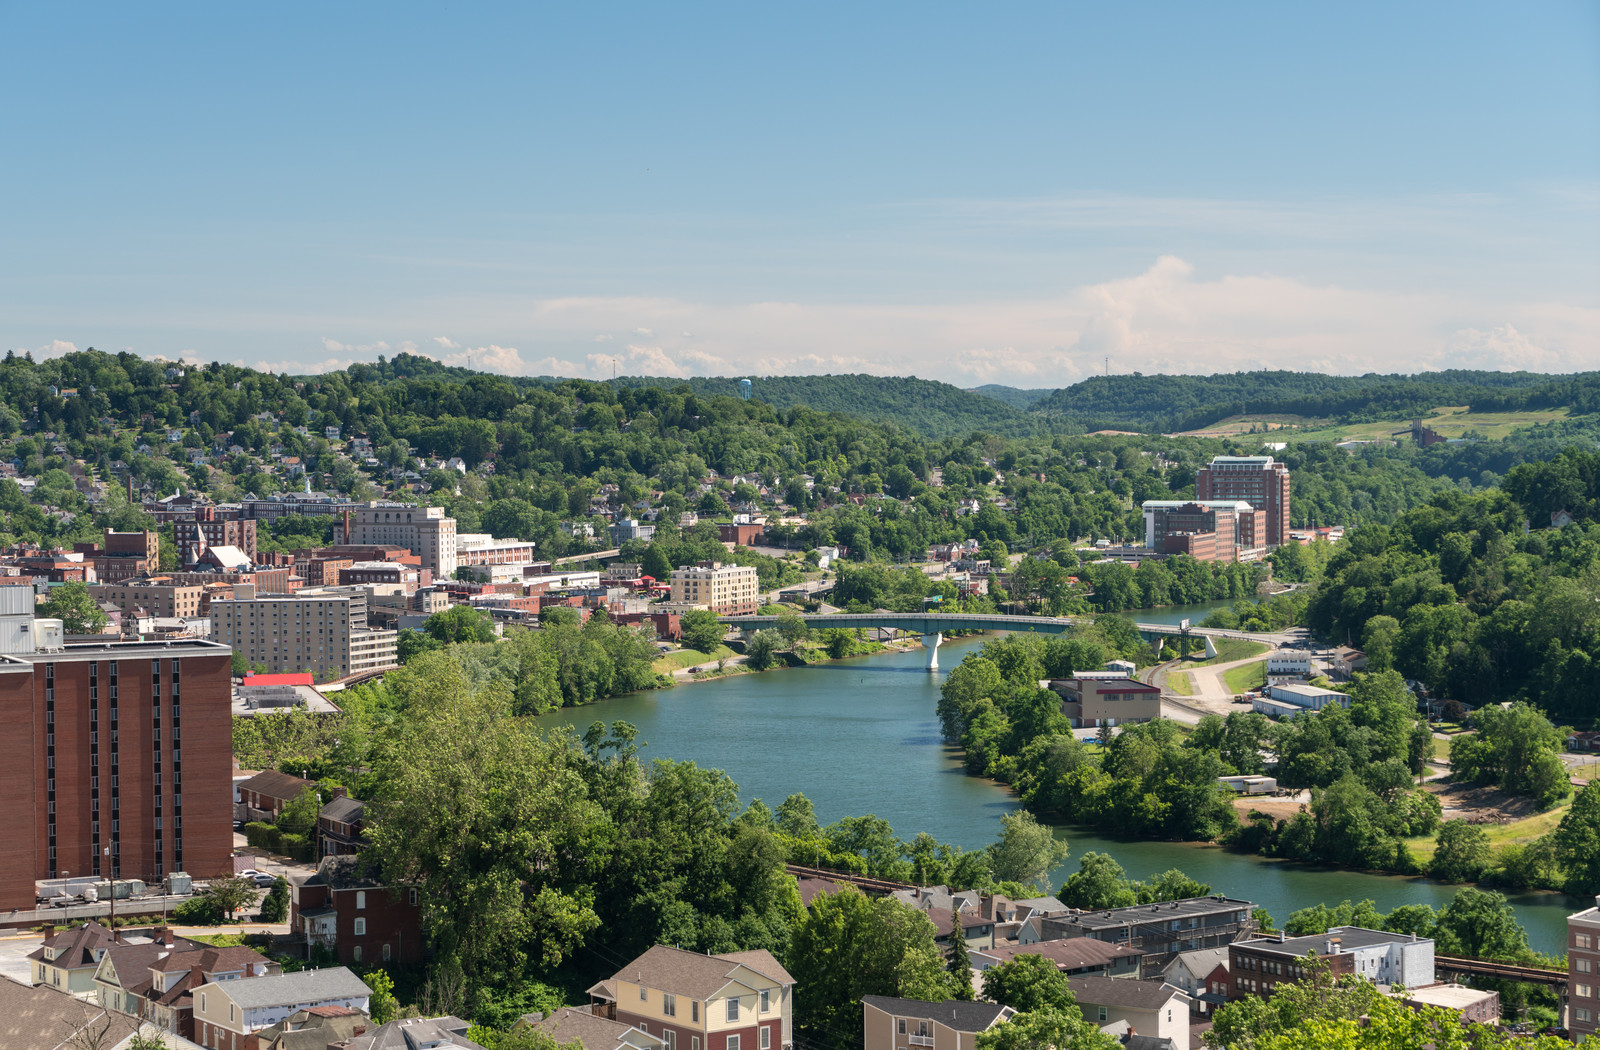 Ariel view of downtown morgantown and the university of west virginia along the Monongahela River